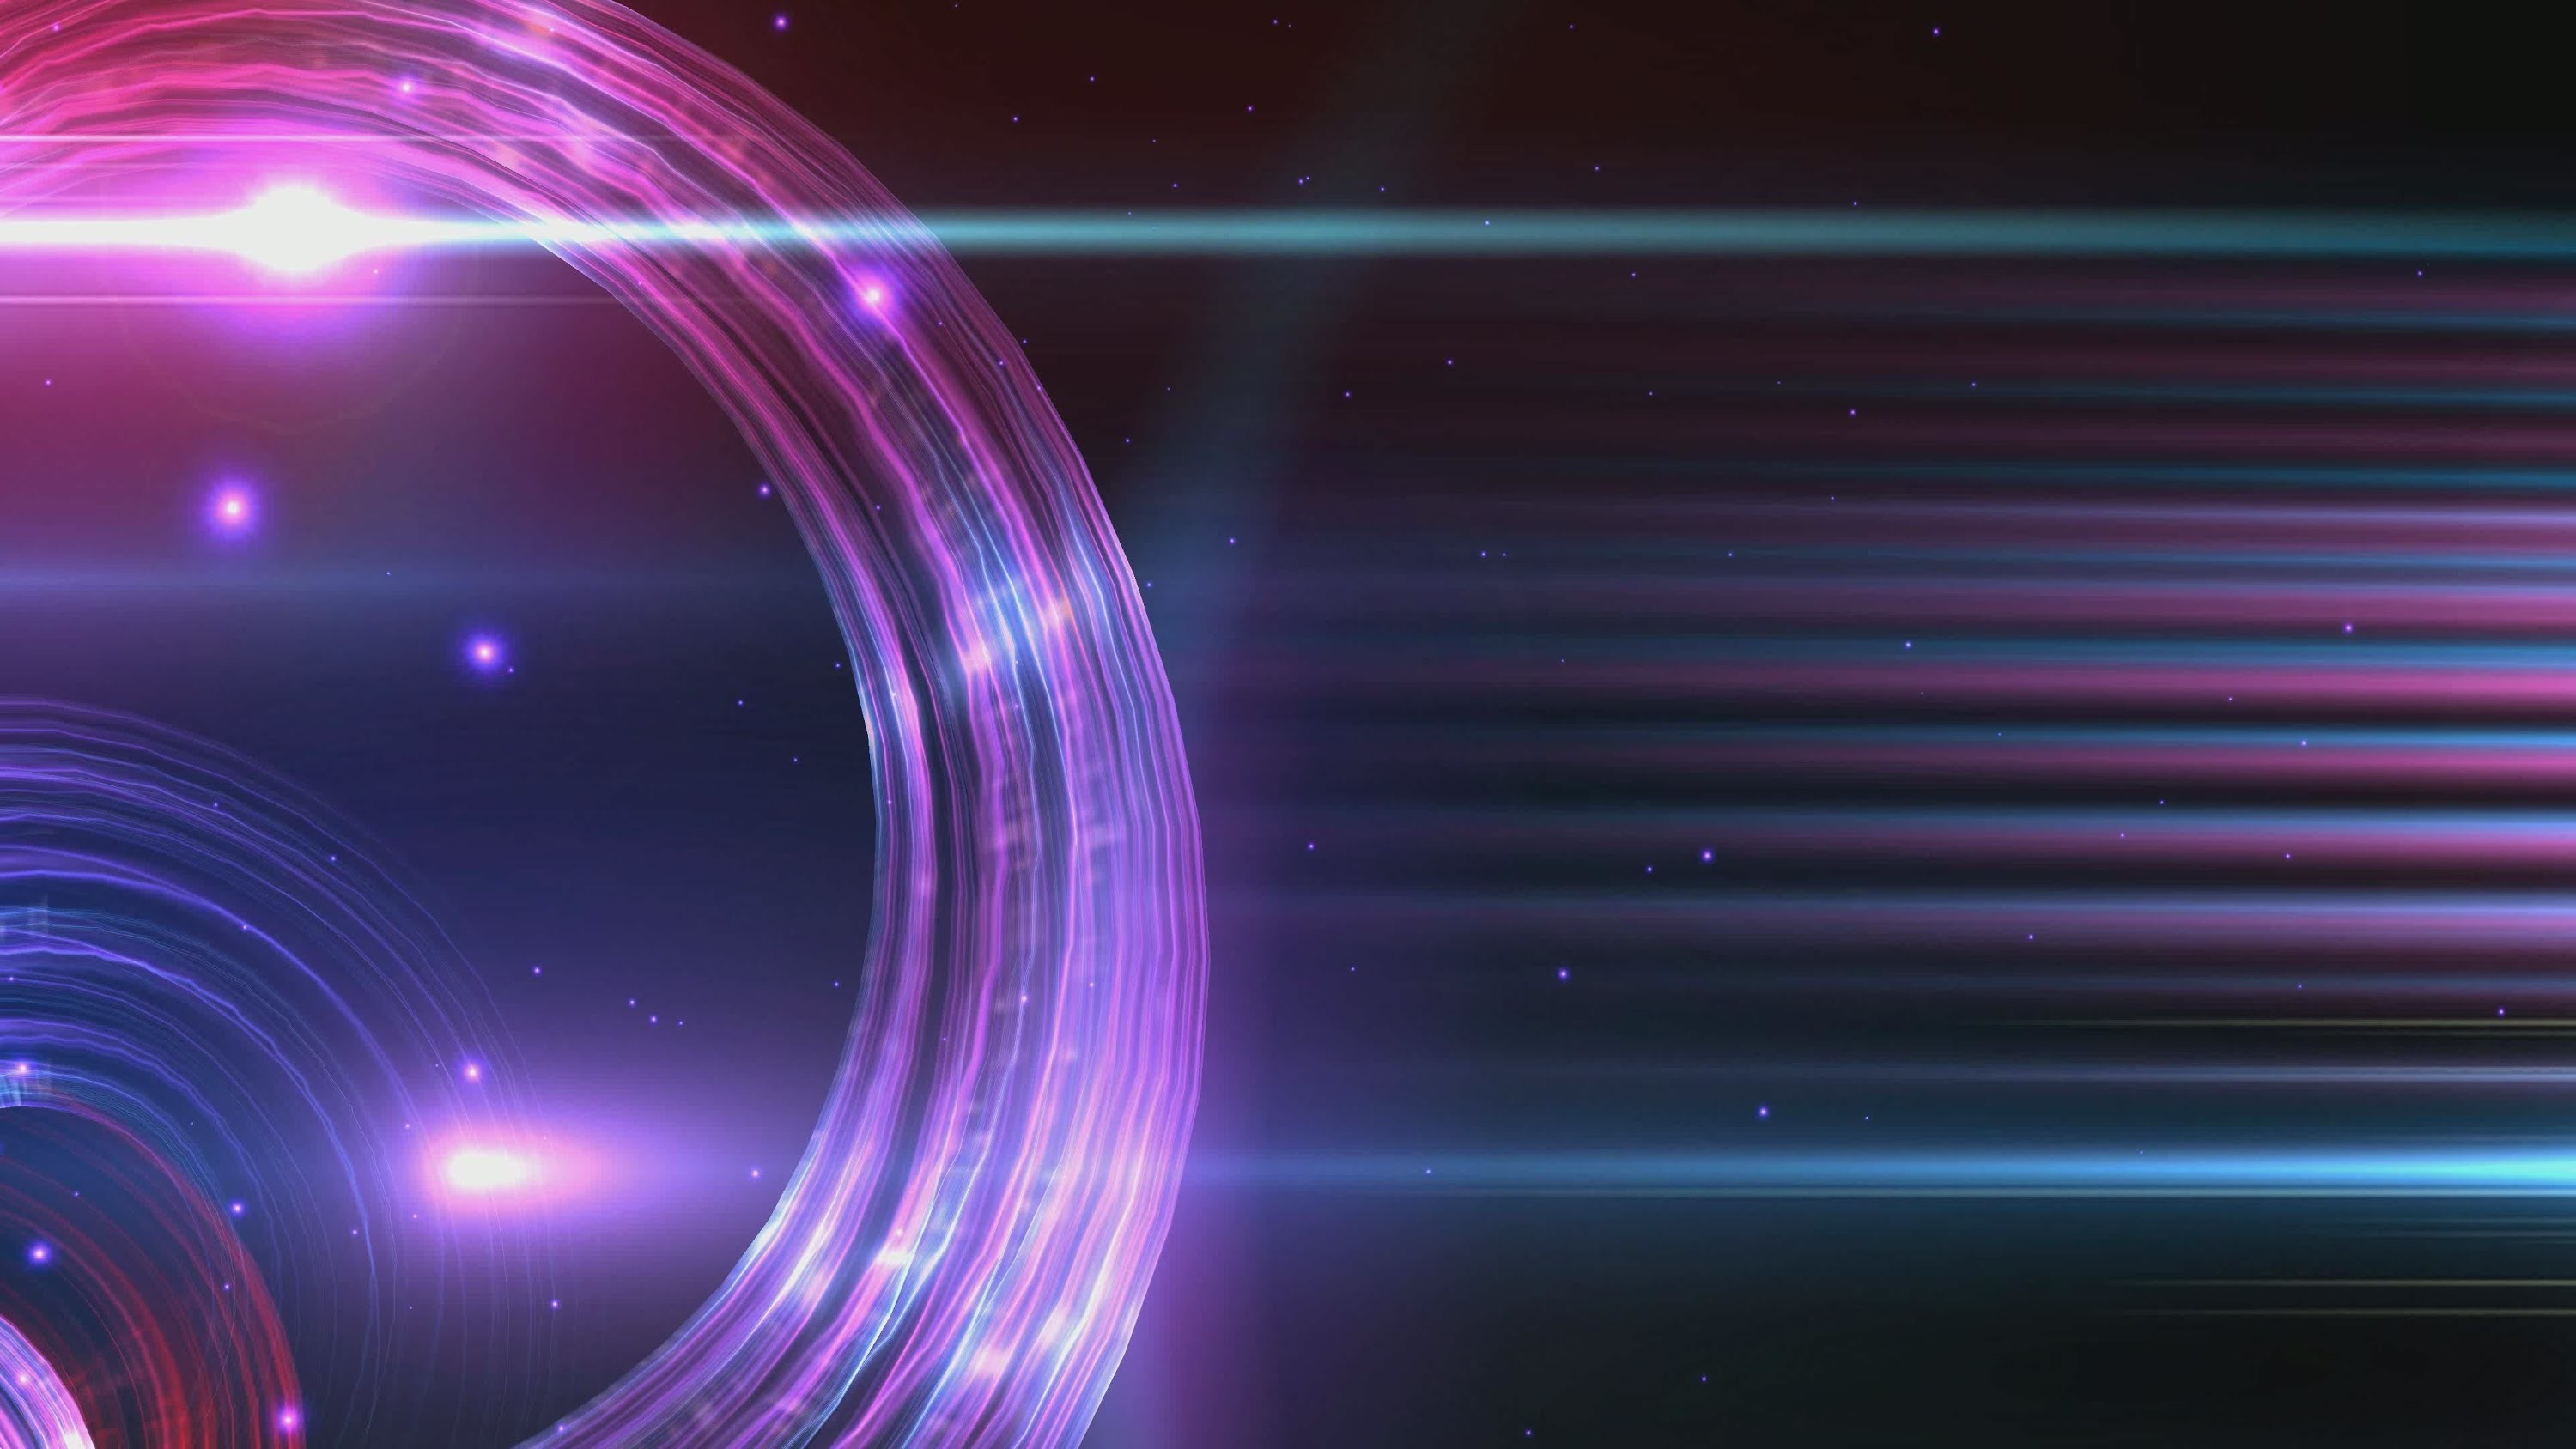 4K Spiral Waves Forms Blue Purple Ambient Space 2160p Background Video UHD  Effect – YouTube